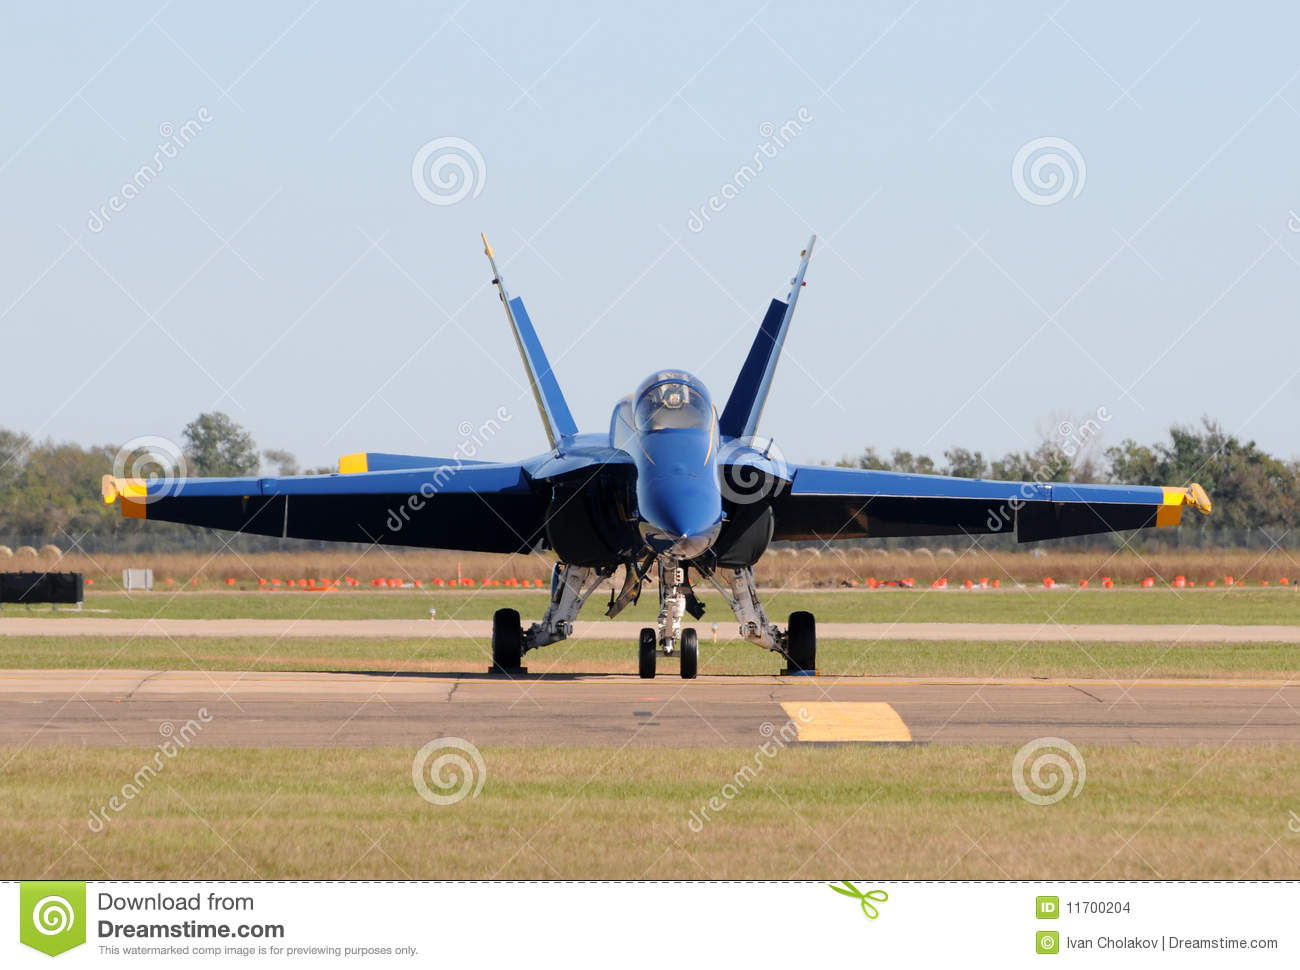 Modern Fighter Jet Front View Stock Images - Image: 11700204